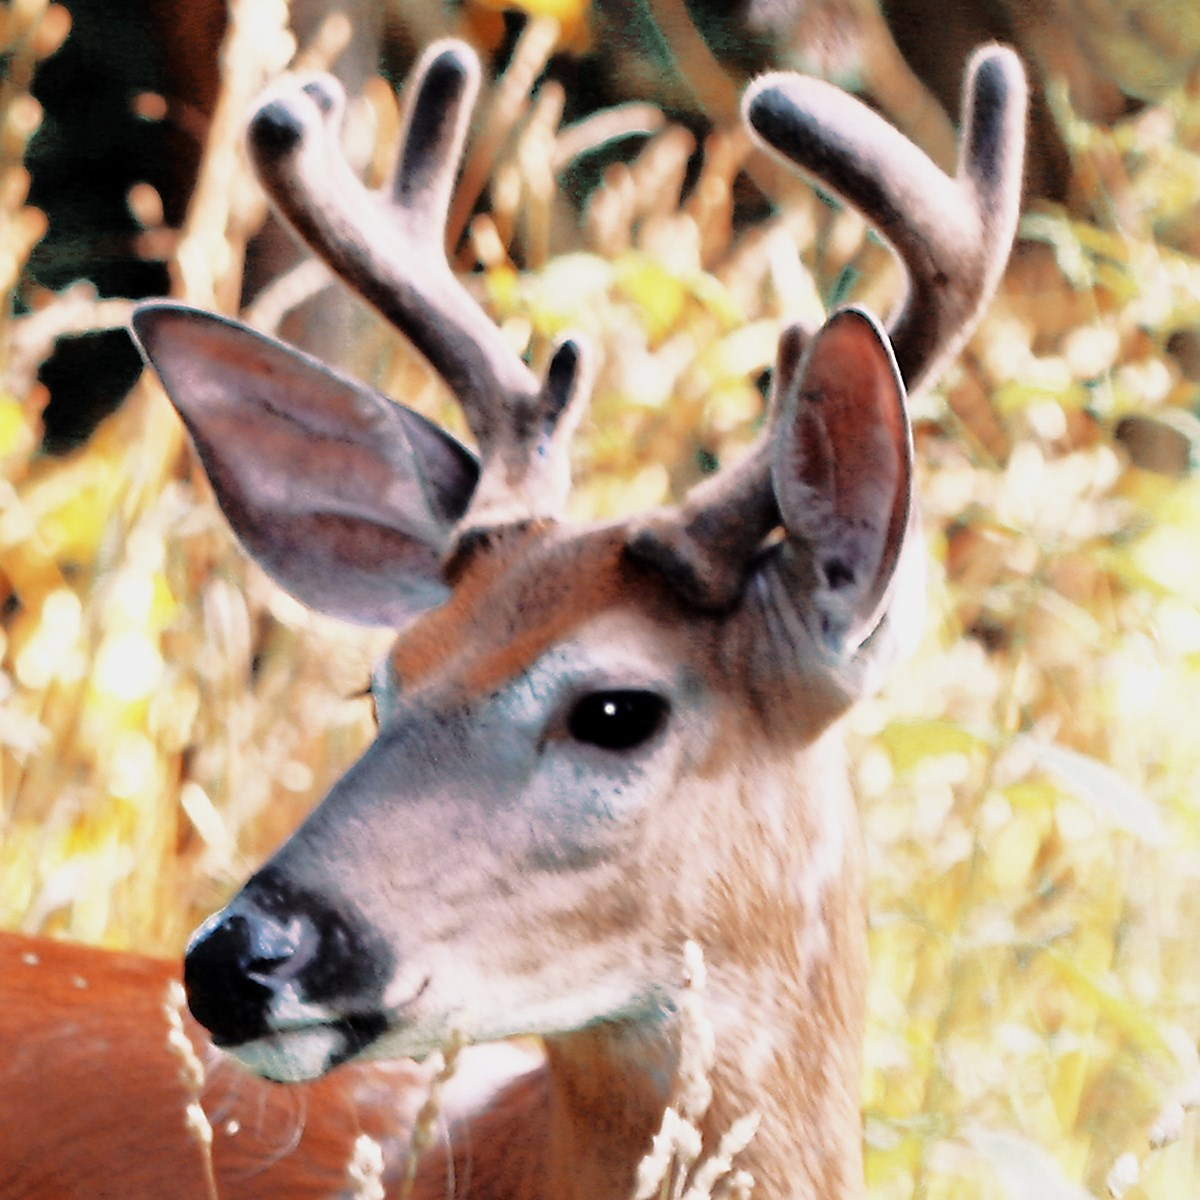 This alert young buck deer was spotted at Snyder's Point in Riverview Park.